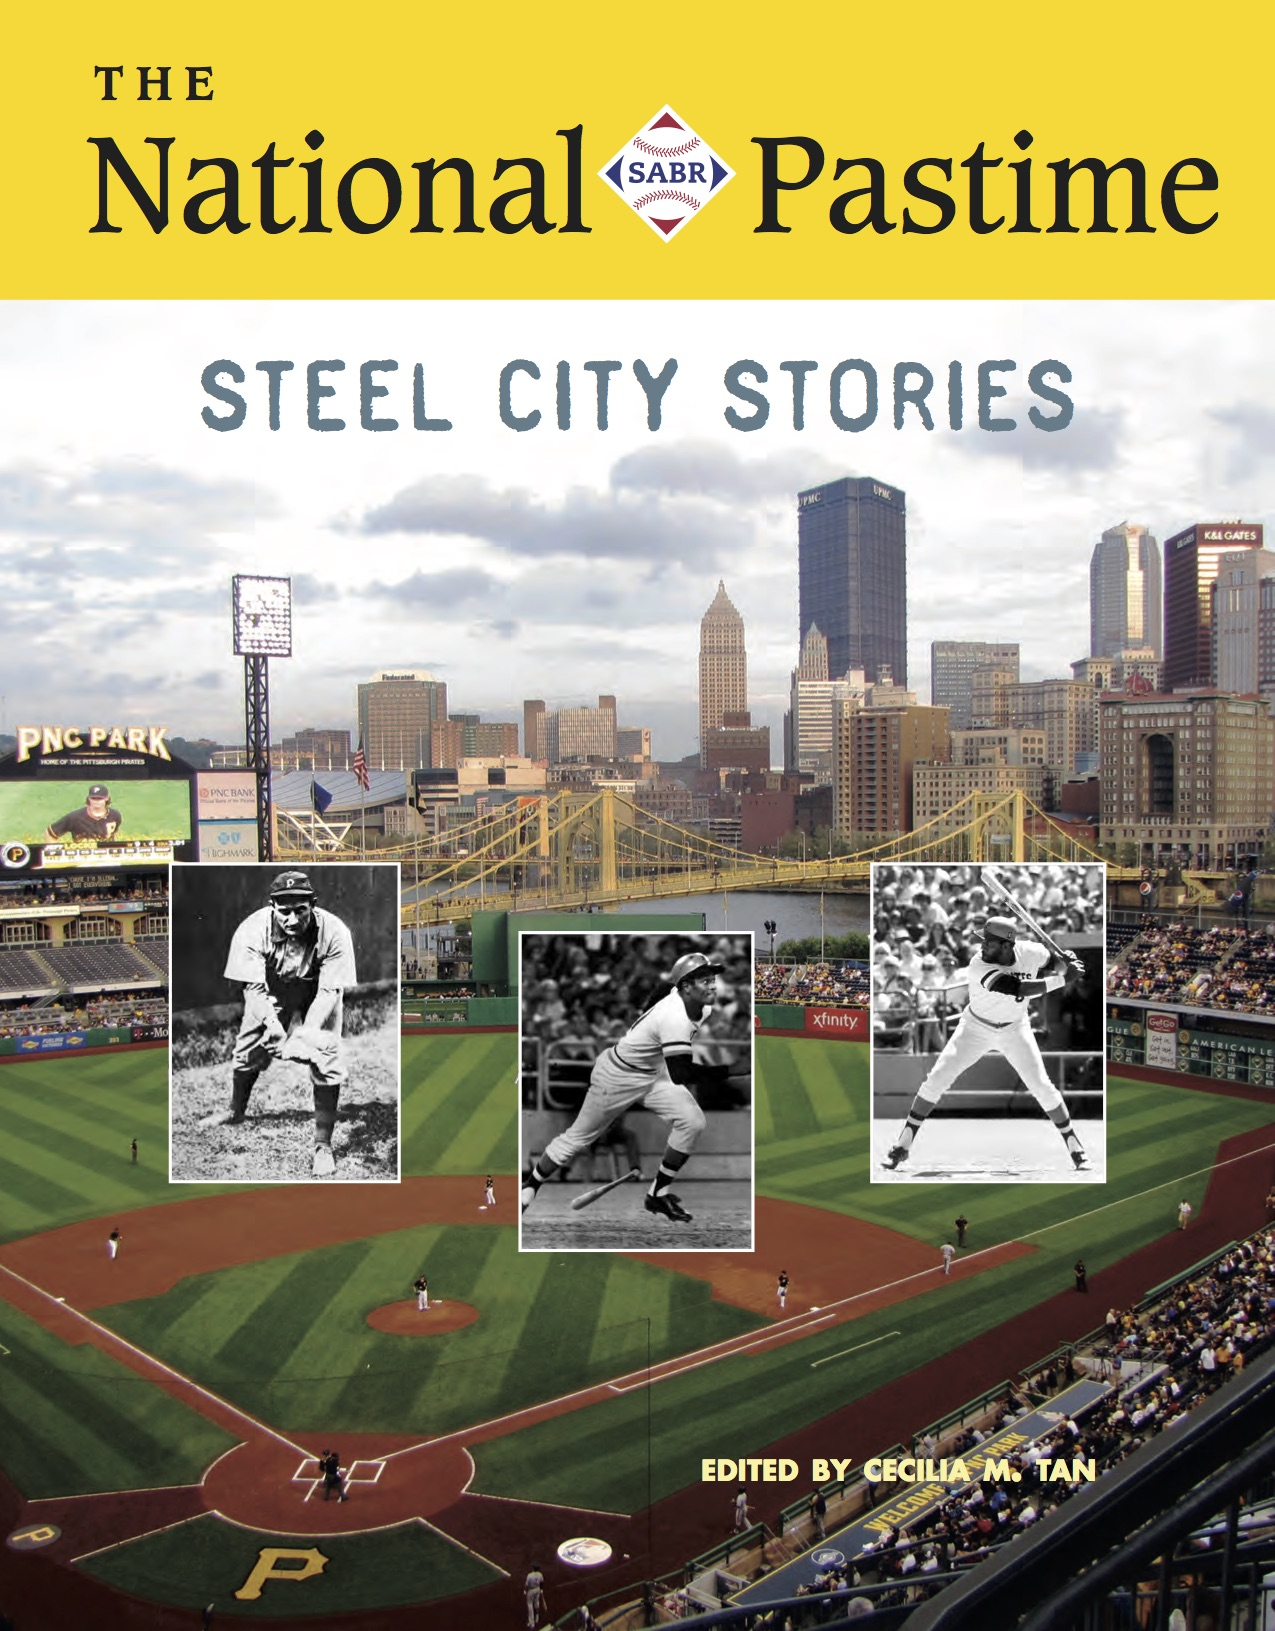 The National Pastime: Steel City Stories